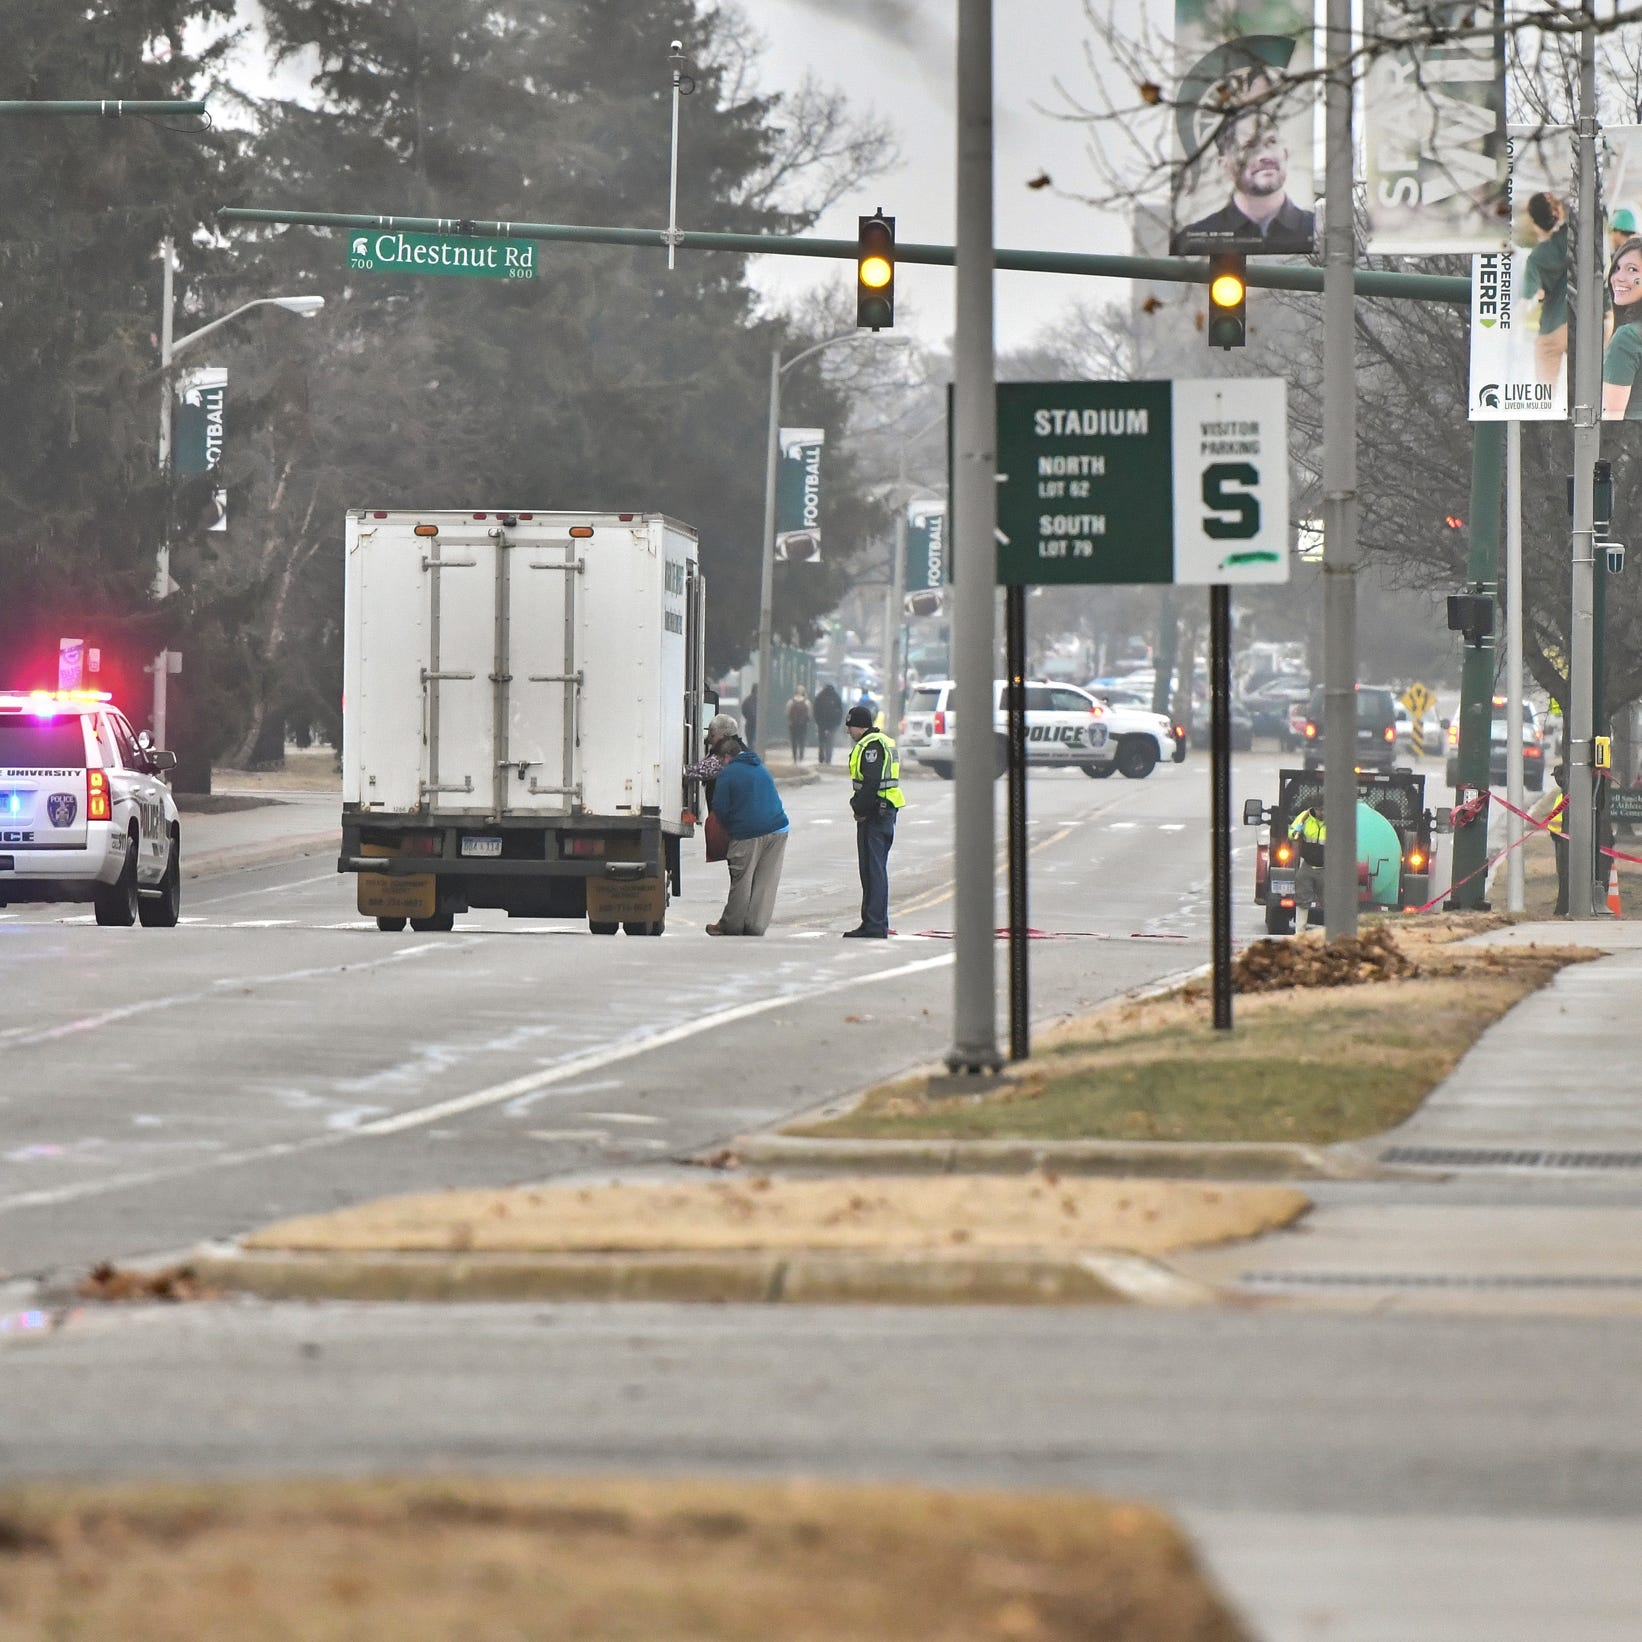 Moped rider killed in crash with salt truck on Michigan State's campus, police say